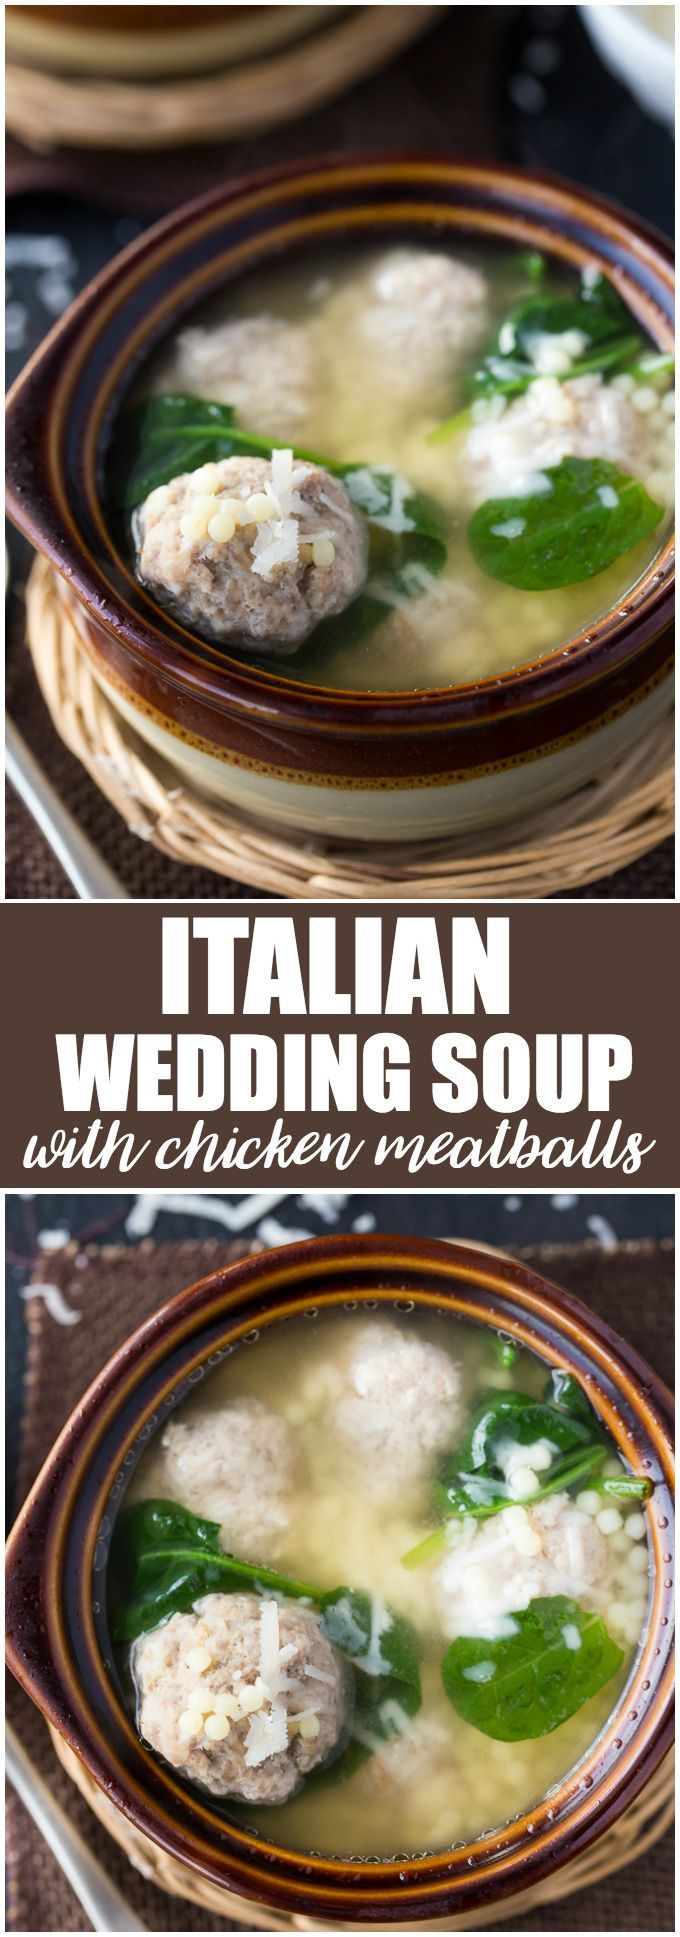 Italian Wedding Soup with Chicken Meatballs - A bowl of comfort food ...